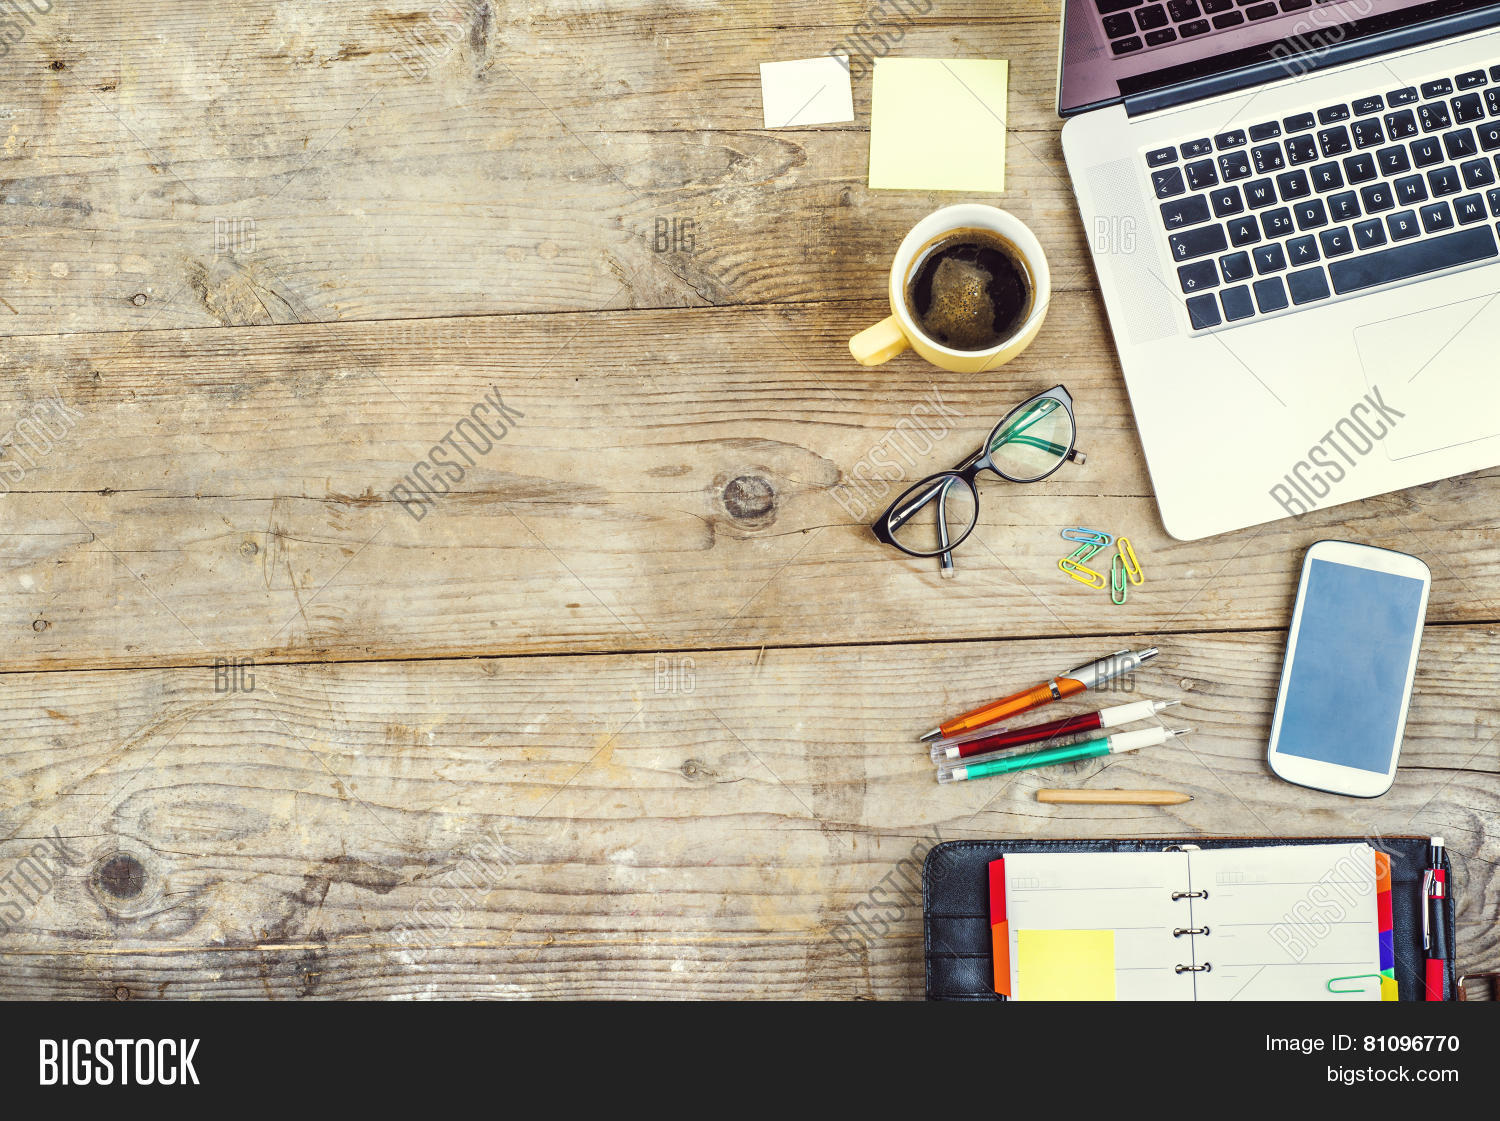 Desktop mix on a wooden office table stock photo stock for Table wallpaper